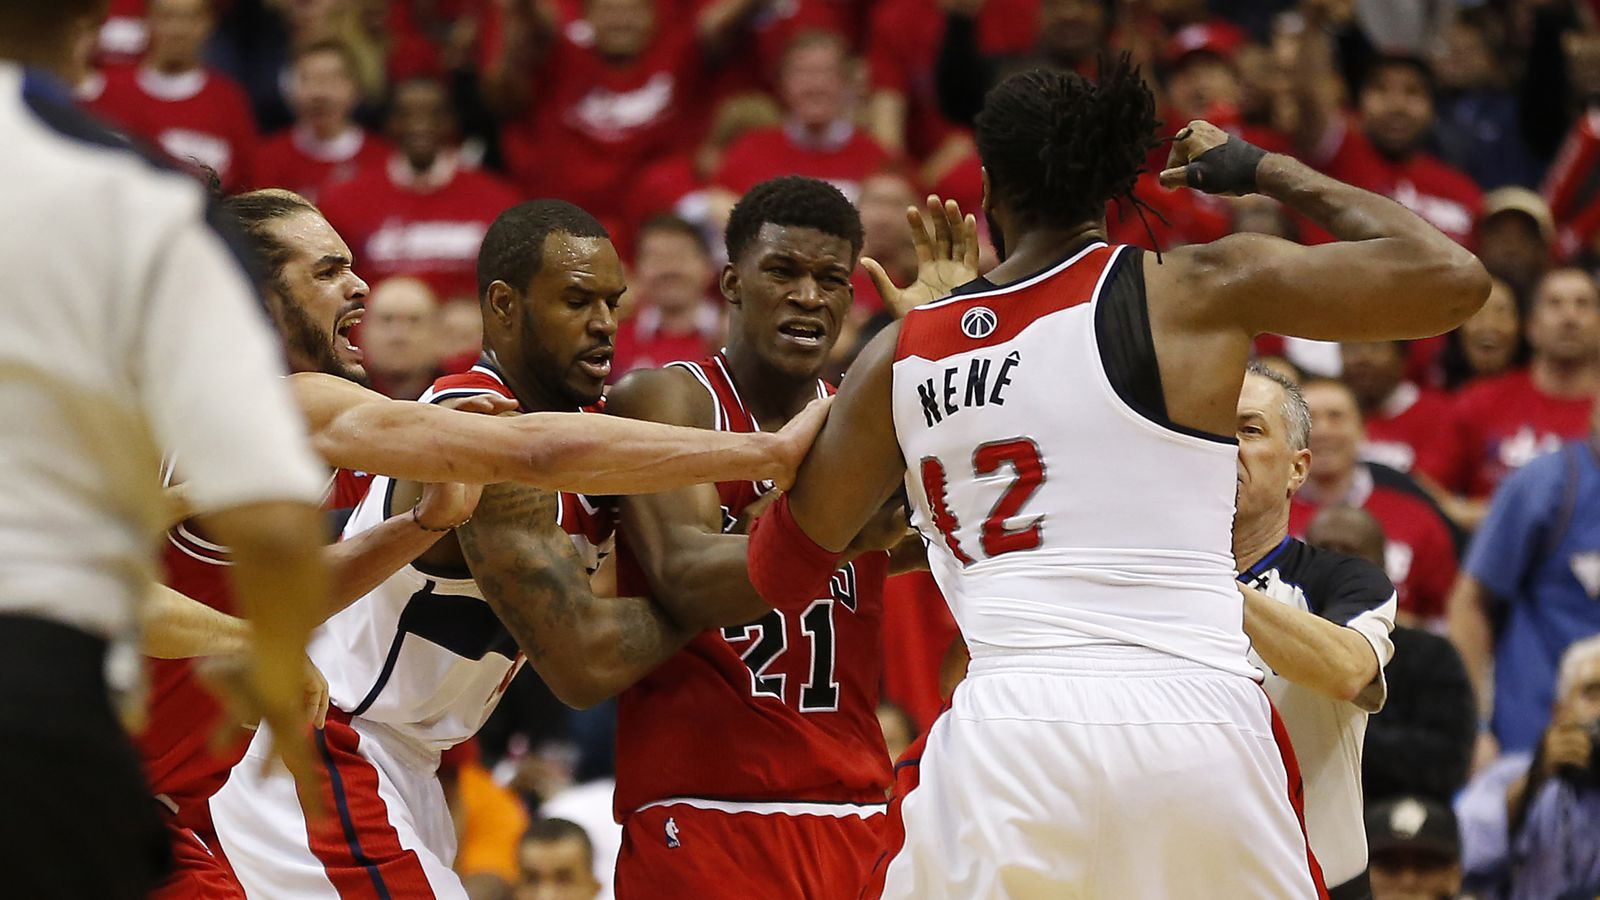 nene suspended for game 4 after altercation with jimmy